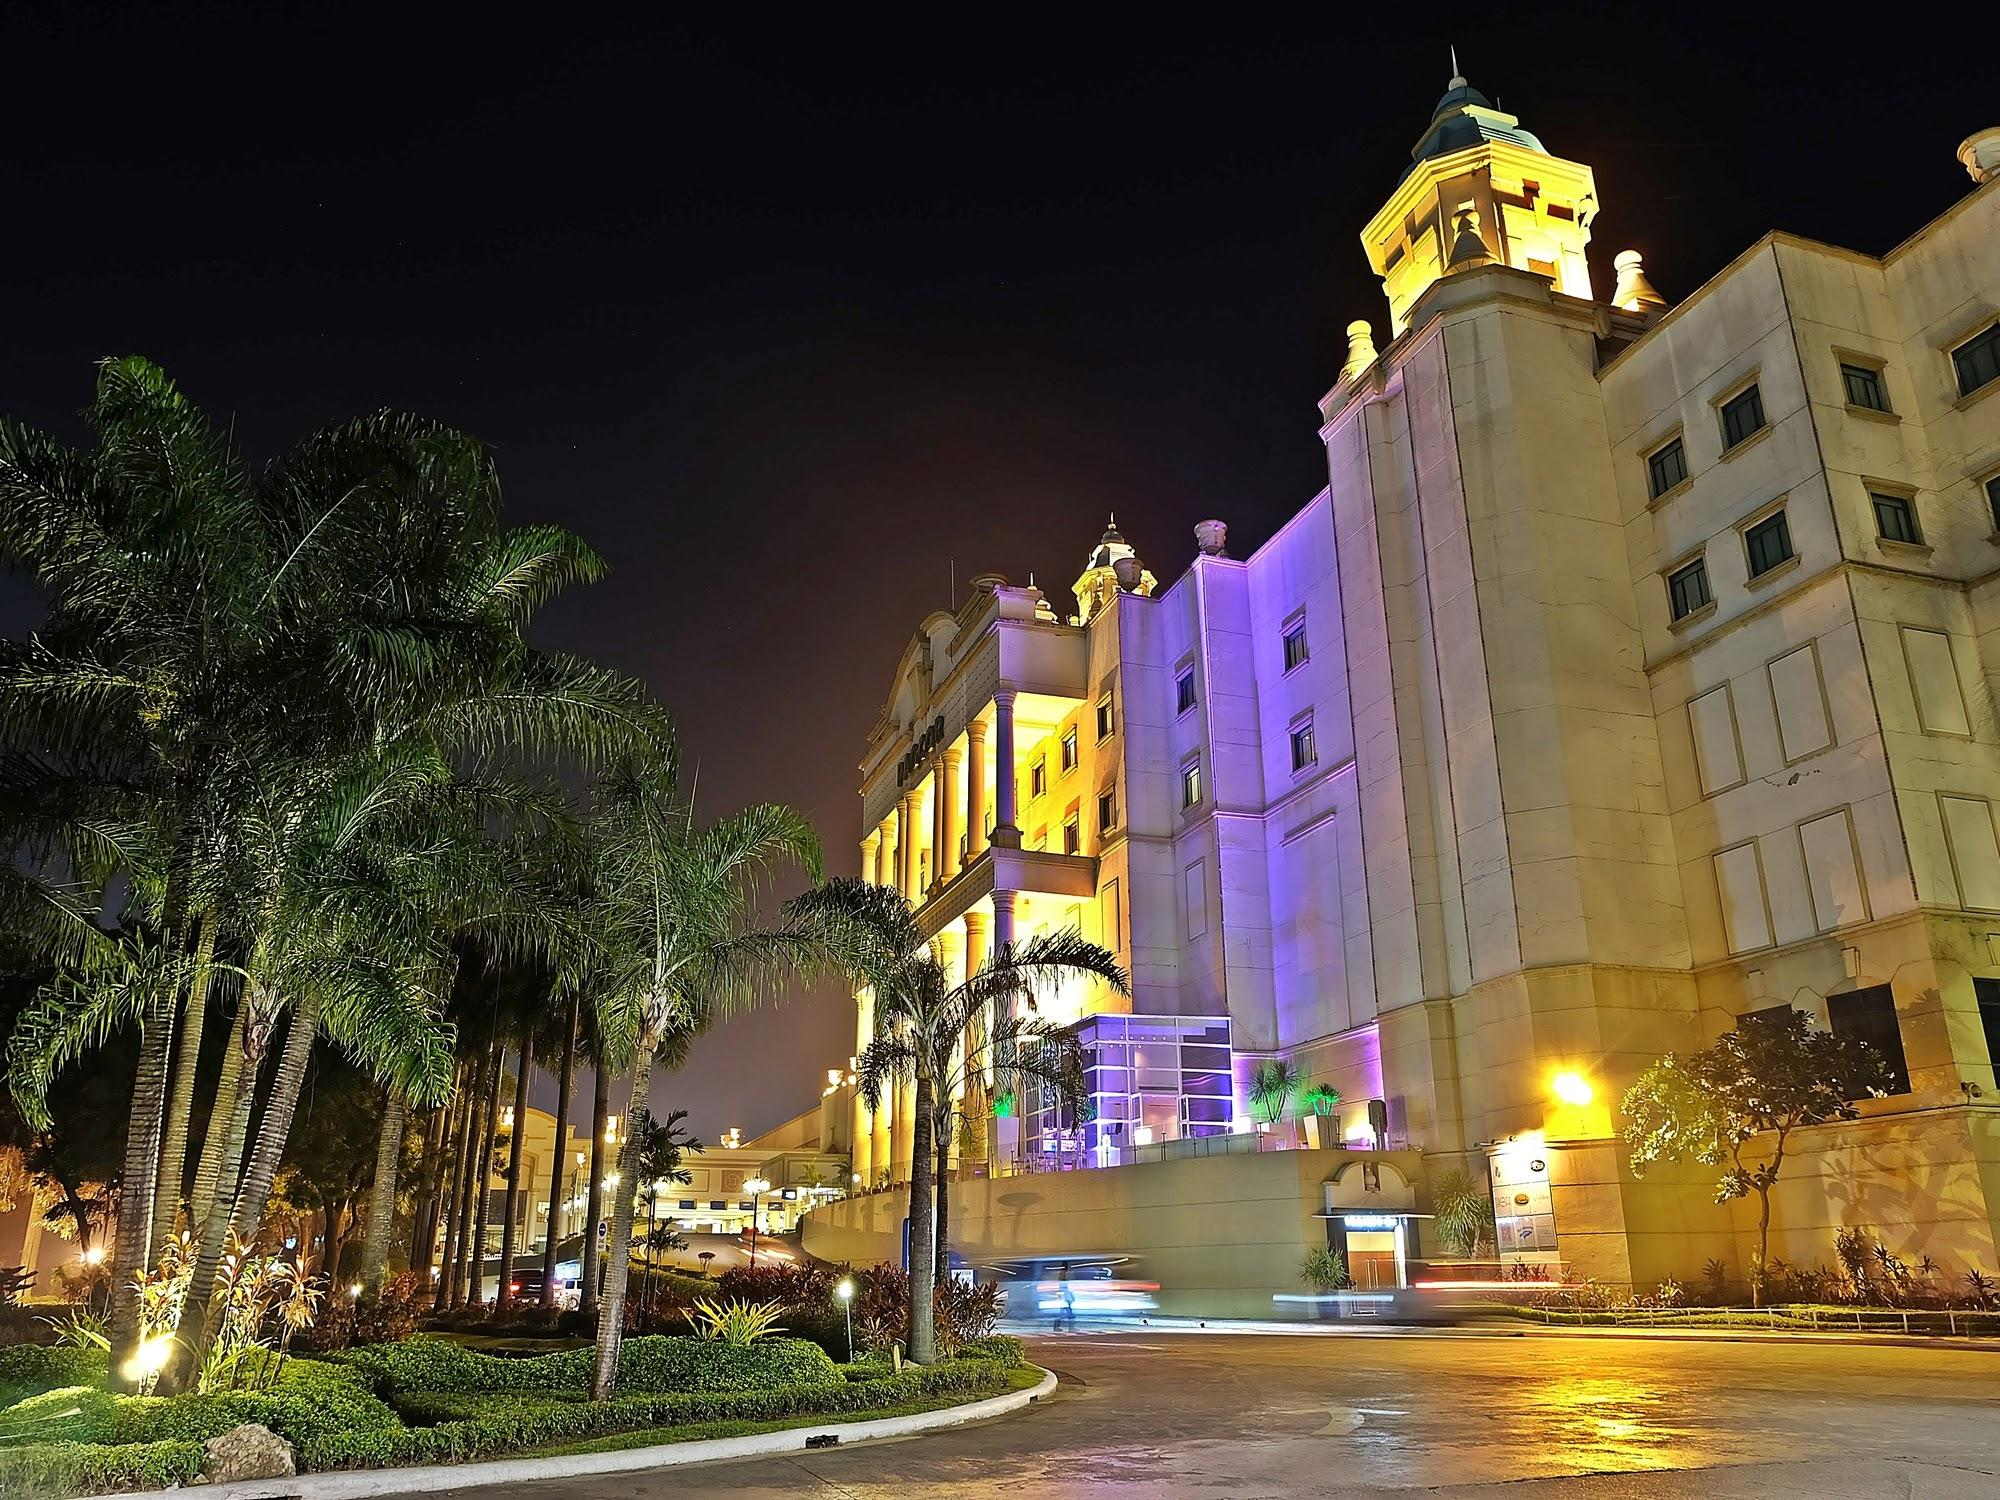 Waterfront Cebu City Hotel and Casino Cebu-Stadt - Hotel Aussenansicht